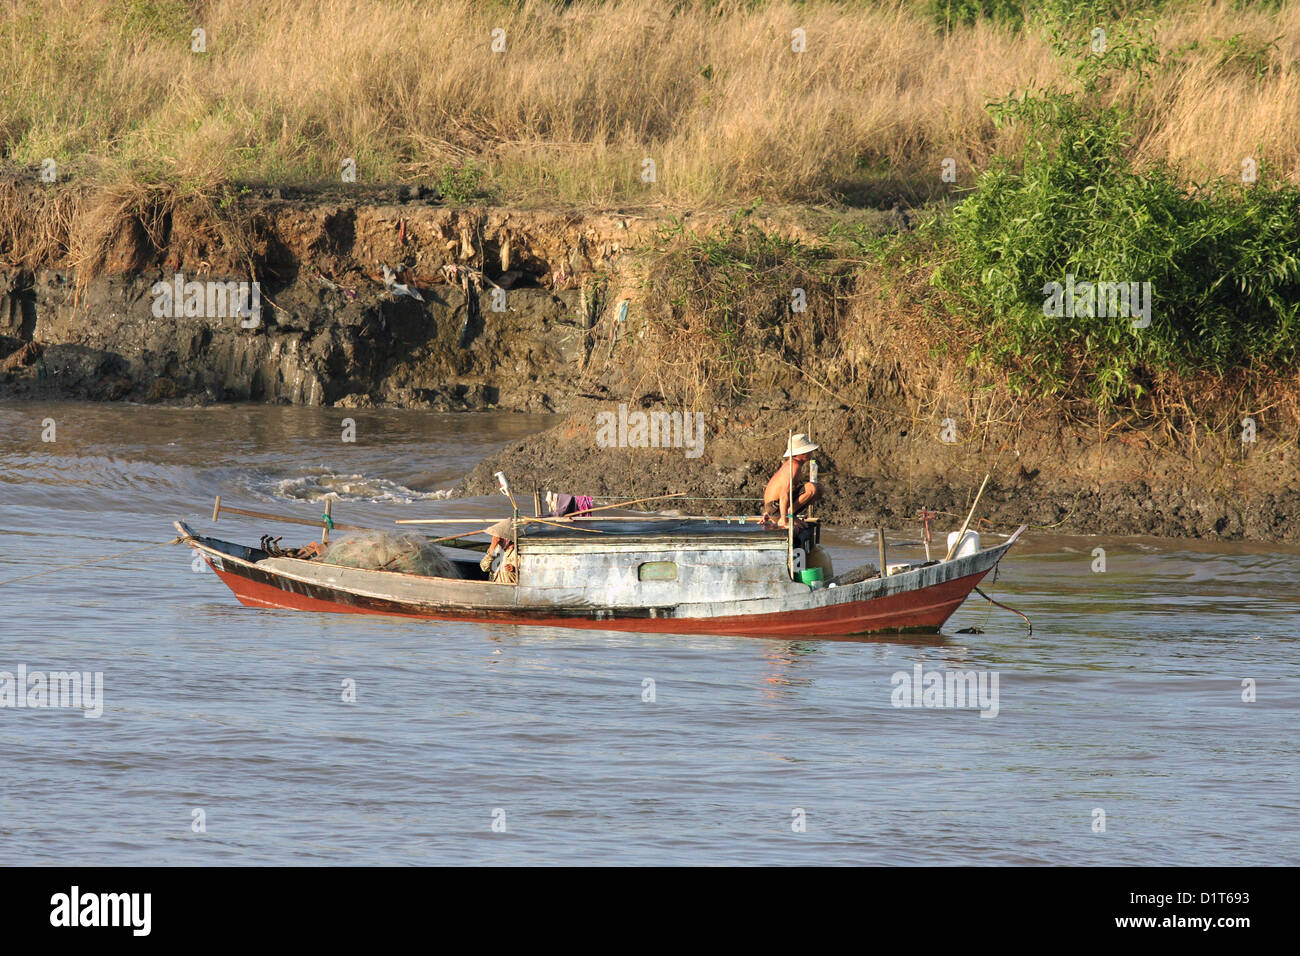 house boat or boat house,where some vietnames people work and living with their families  in mekong river,saigon,vietnam - Stock Image